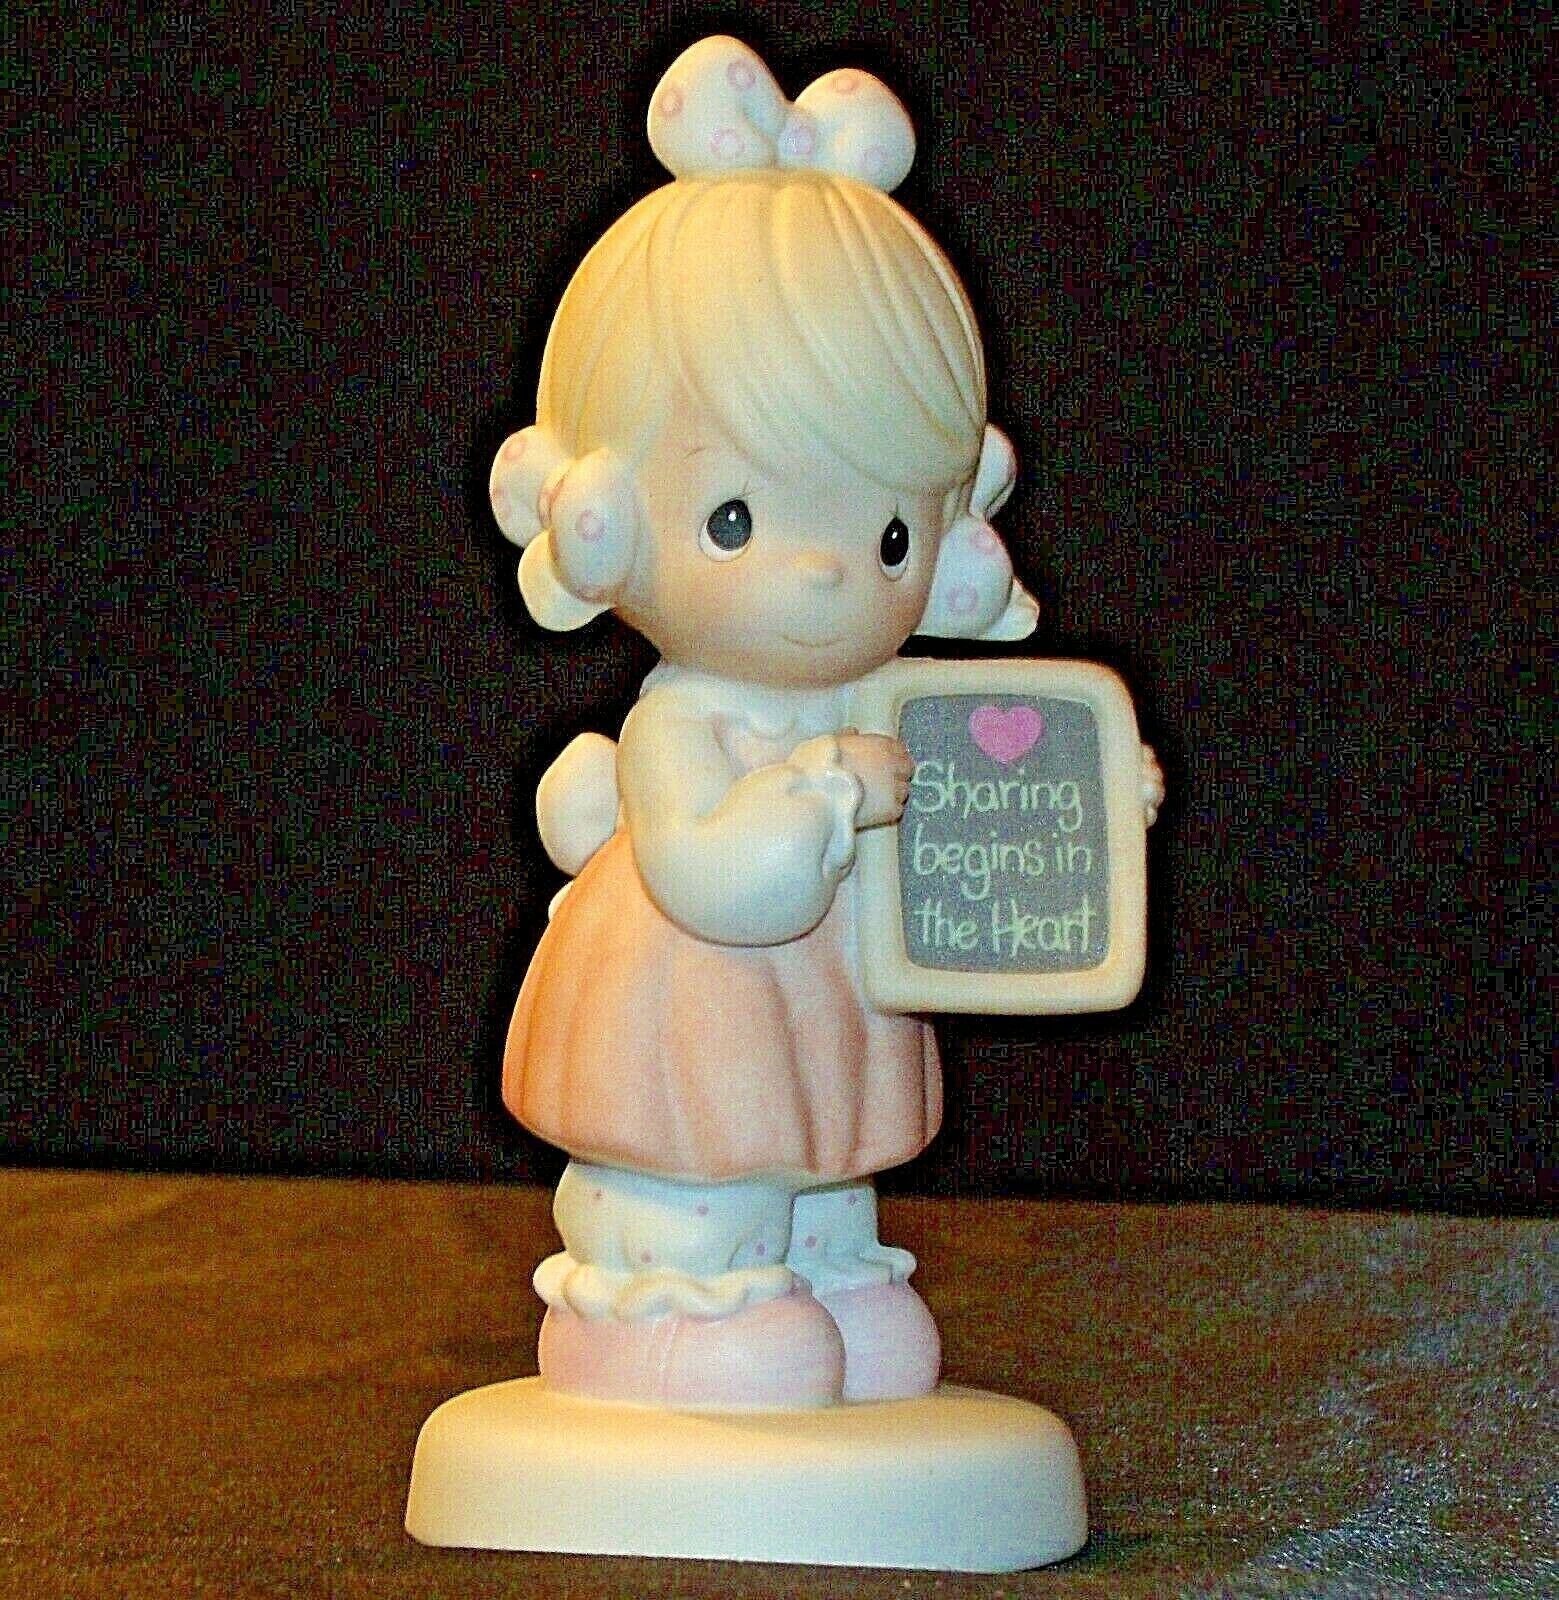 1988 Precious Figurines Moments AA-191843 Vintage Collectible